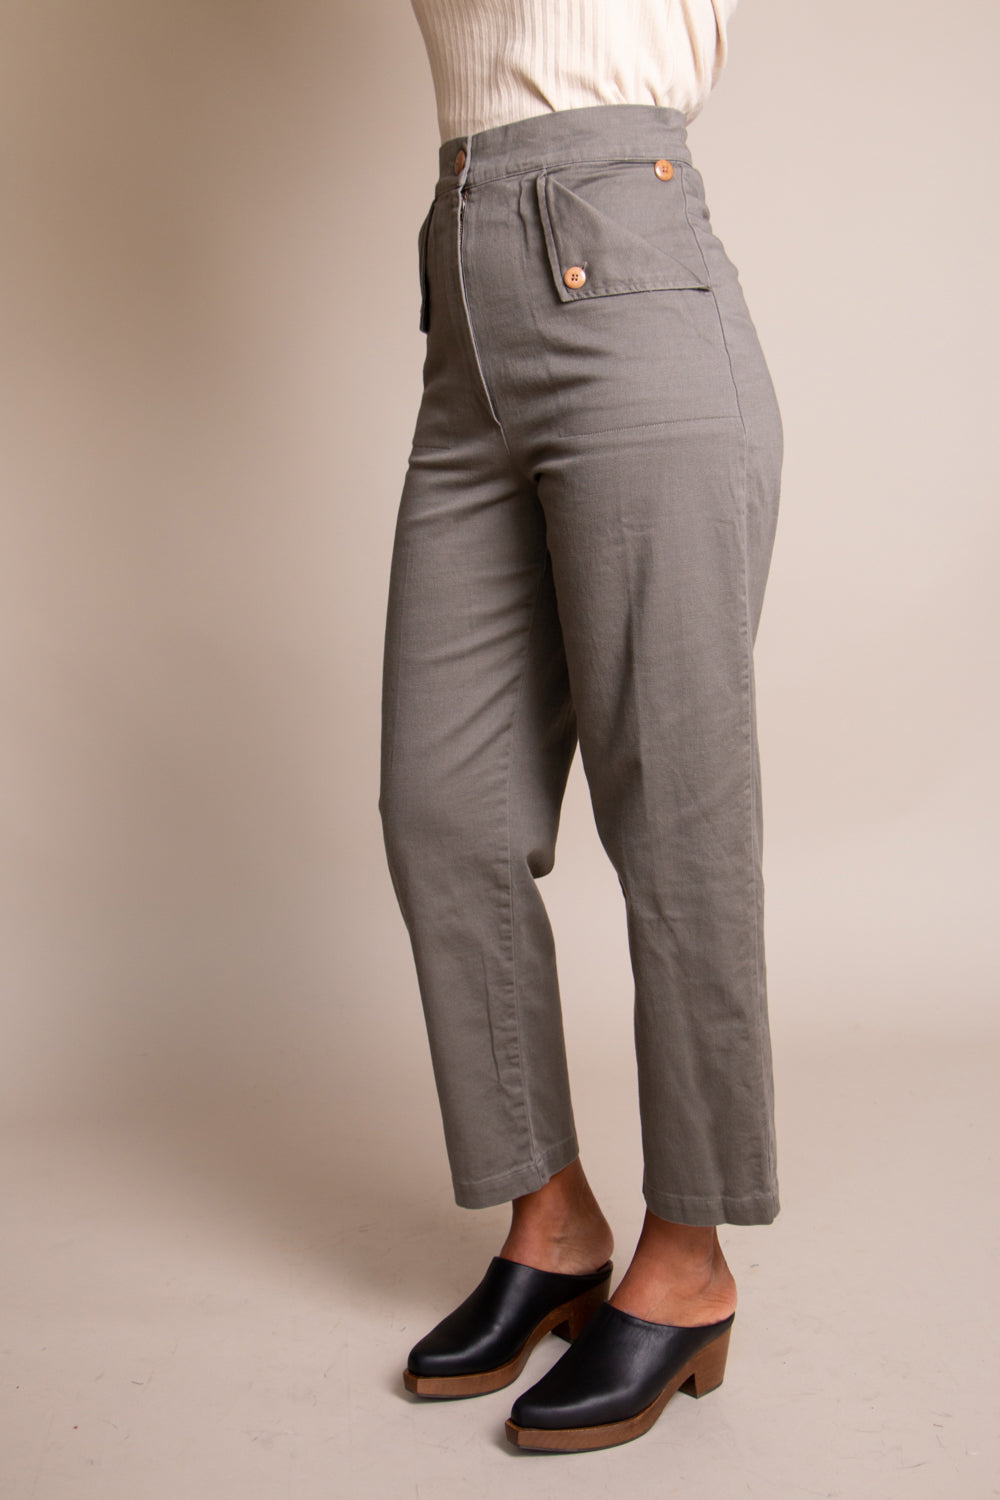 Huxie Pants in Peat